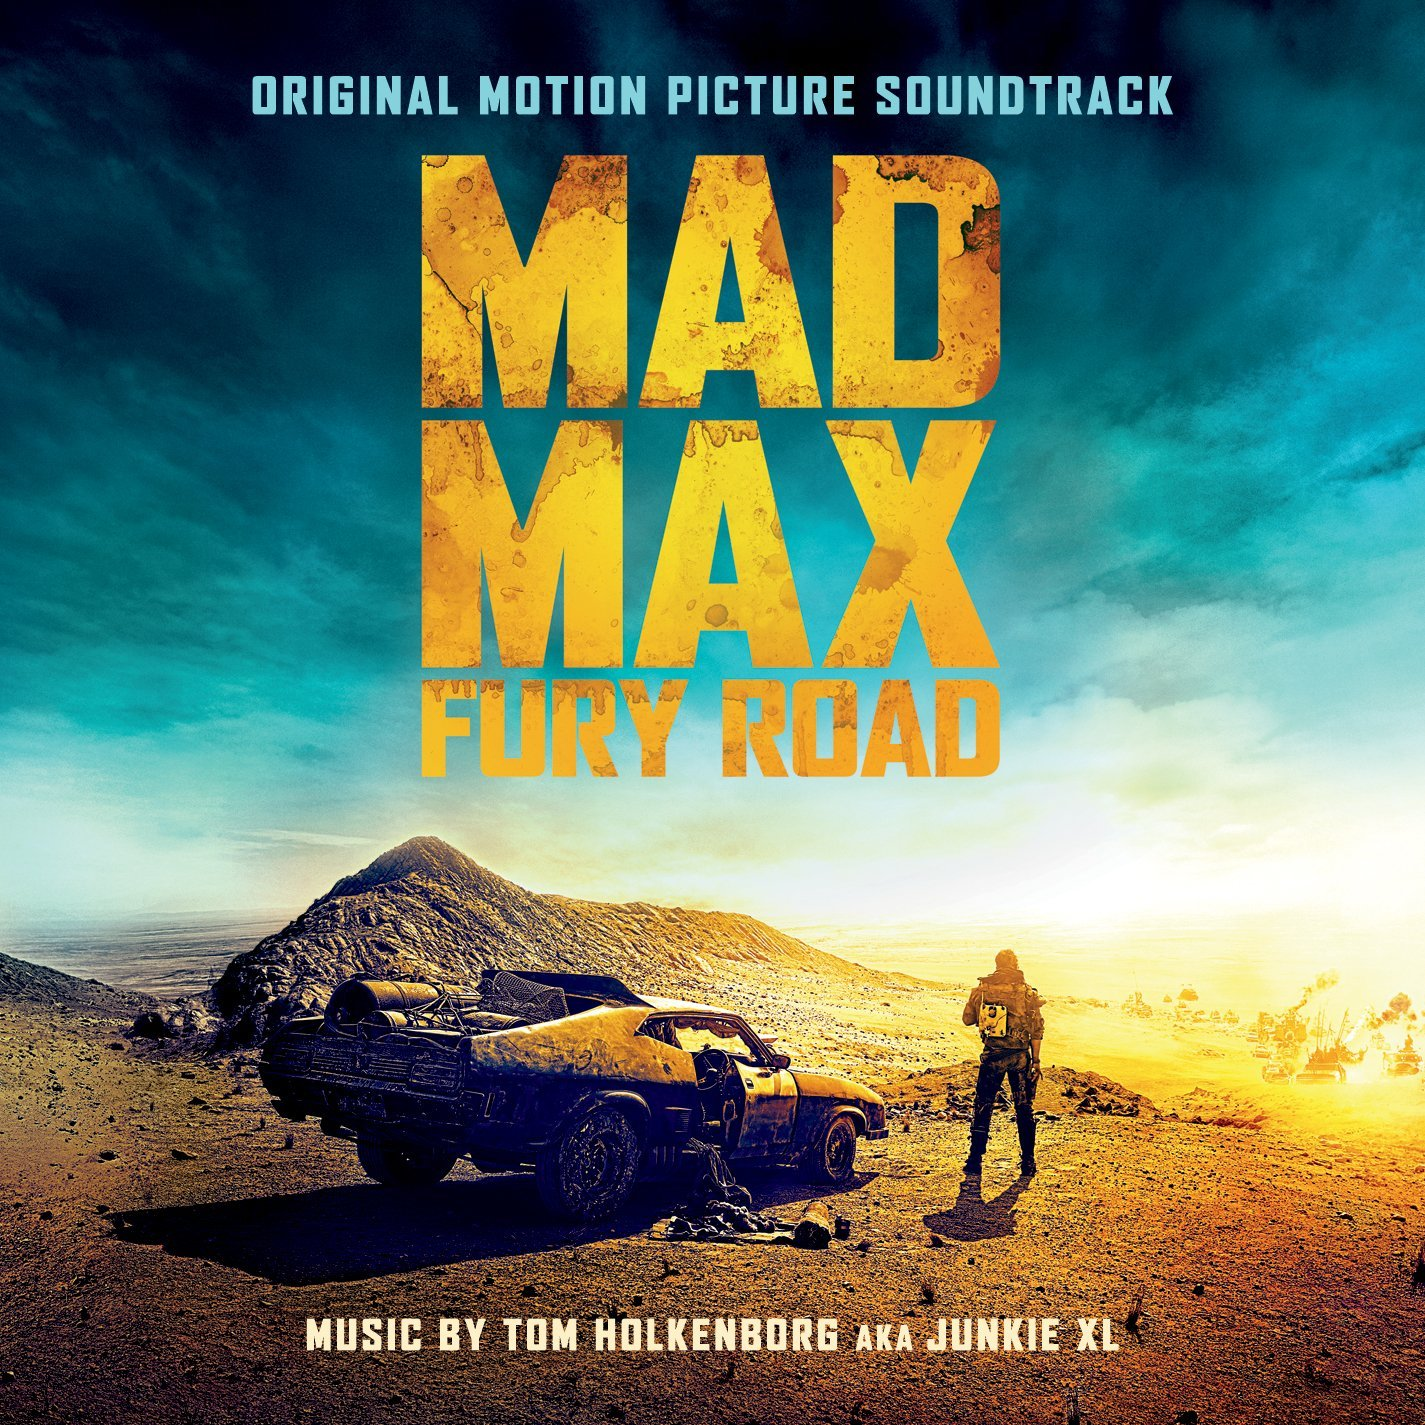 Tom Holkenborg aka Junkie XL - Mad Max: Fury Road - Original Motion Picture Soundtrack - Amazon.com Music